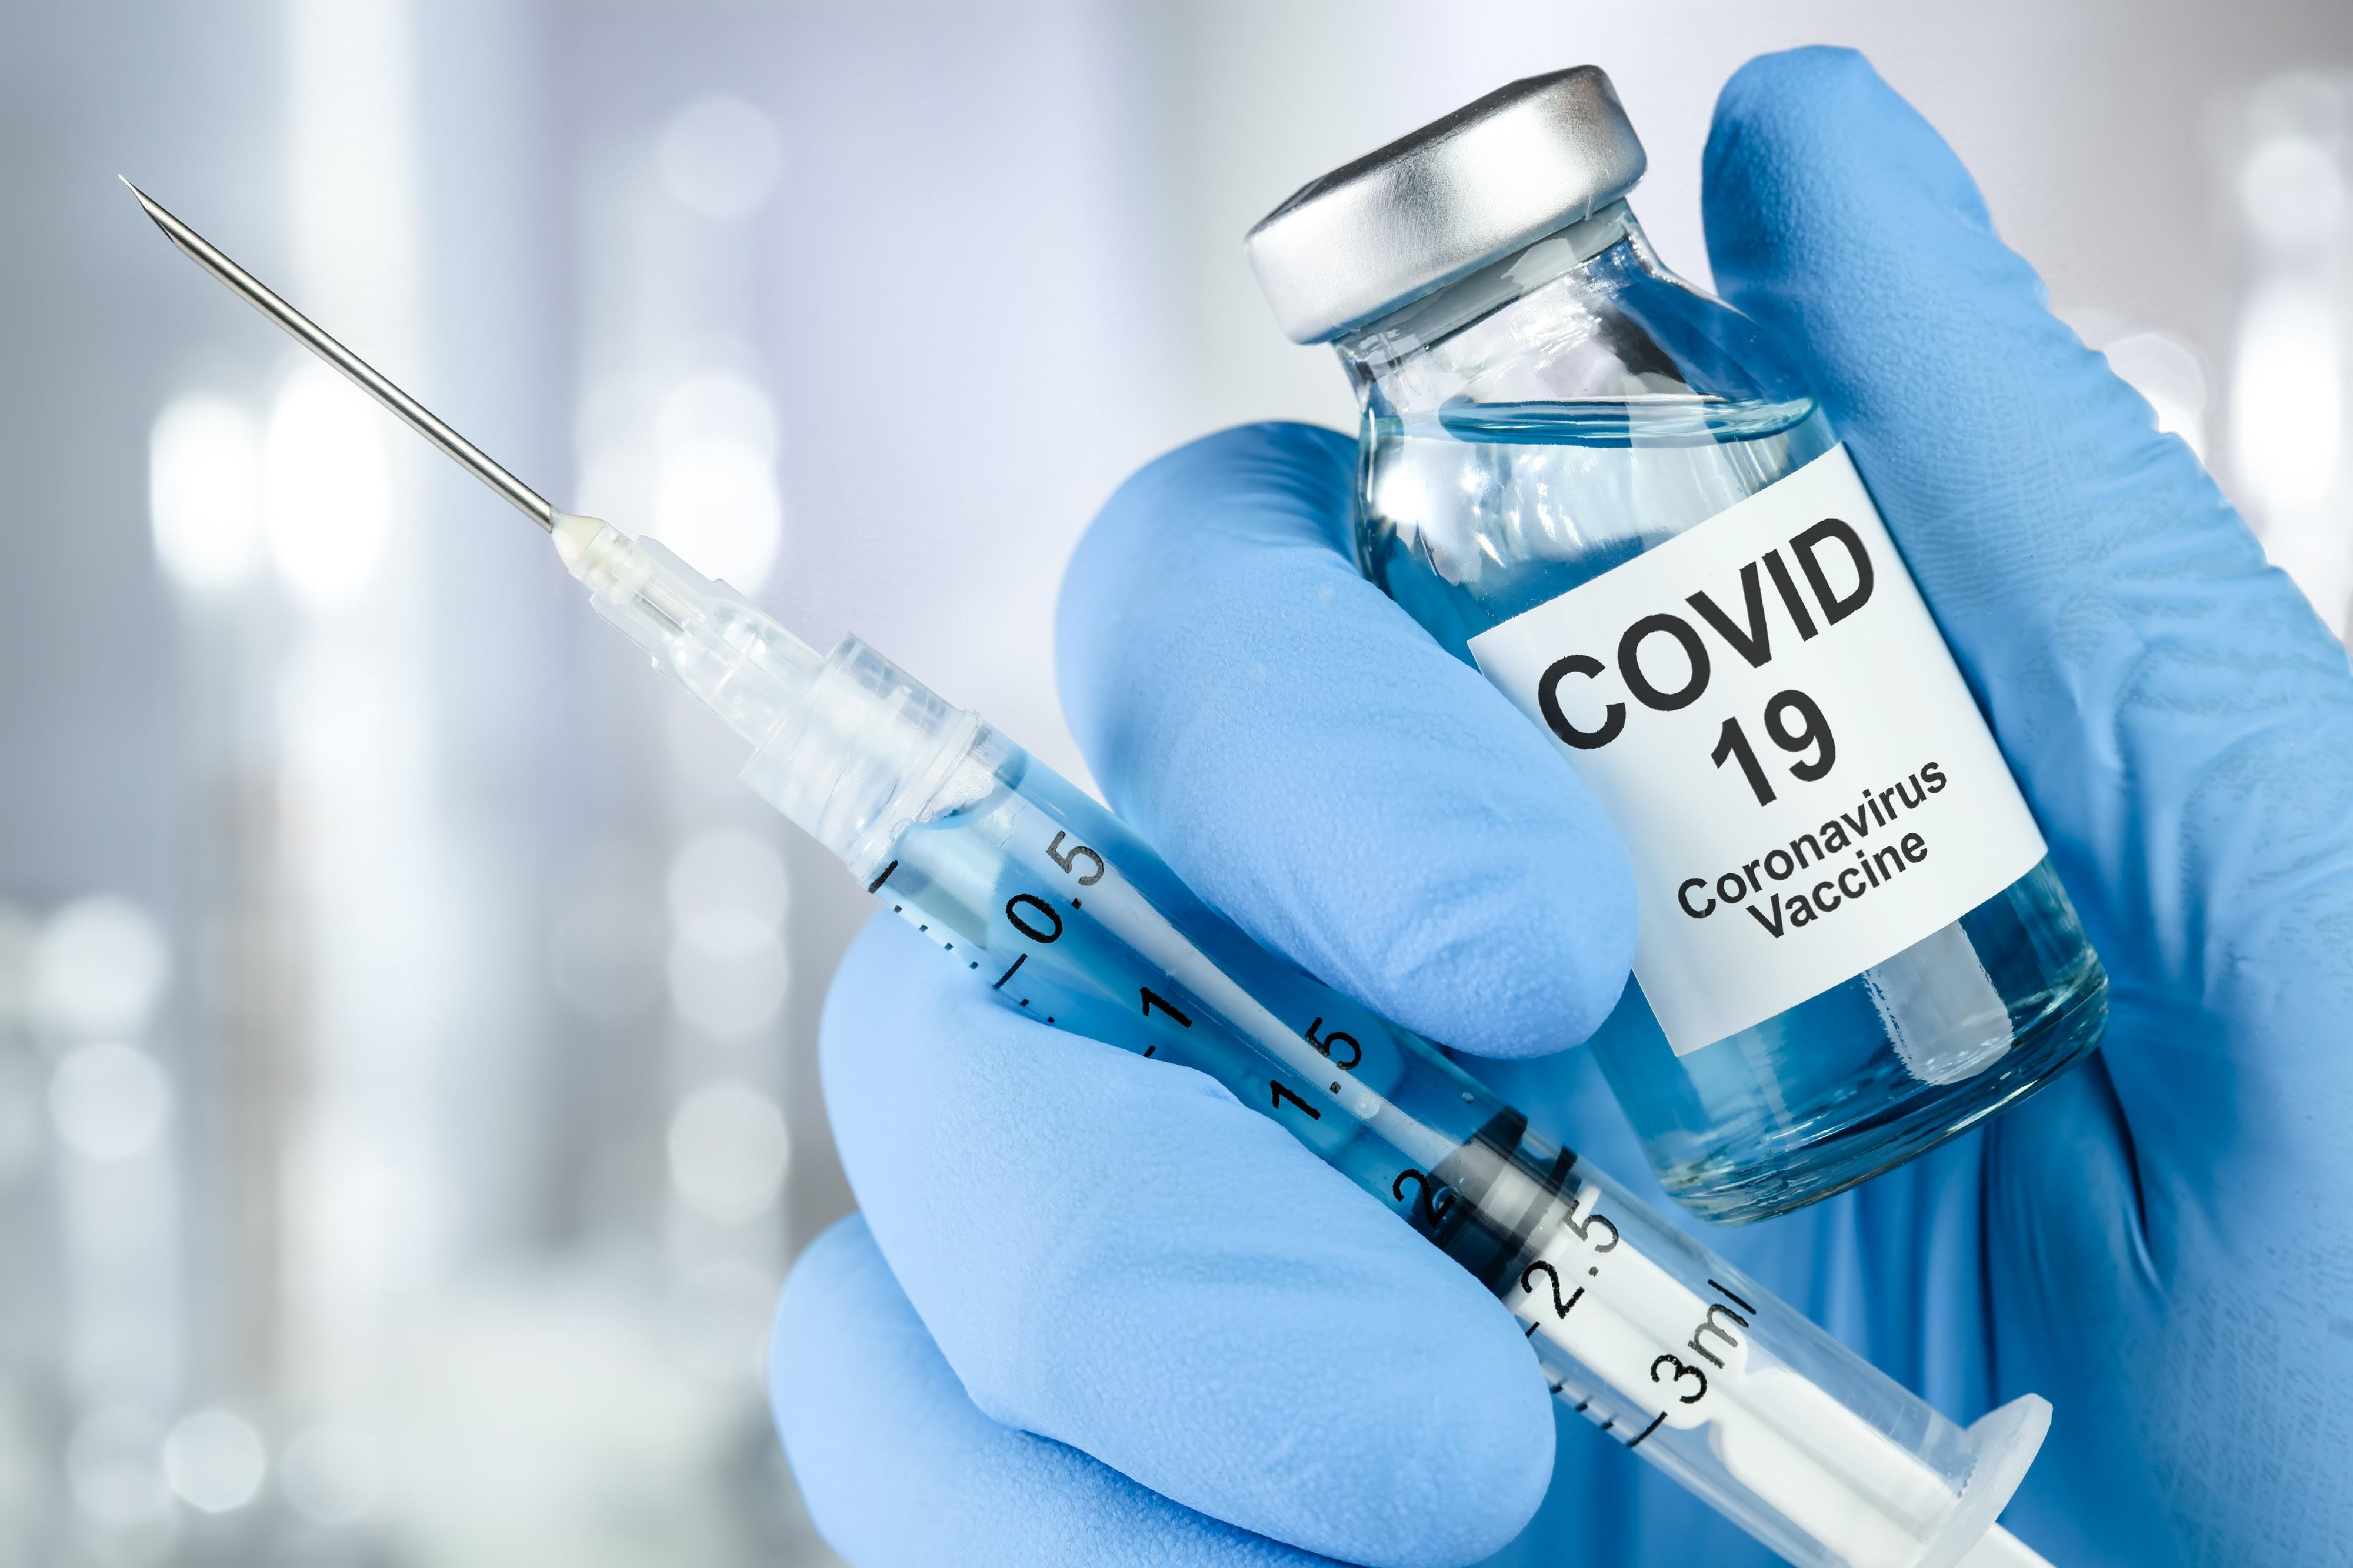 July 19: Covid cases rising but hospitalisations almost non-existent as most restrictions lift